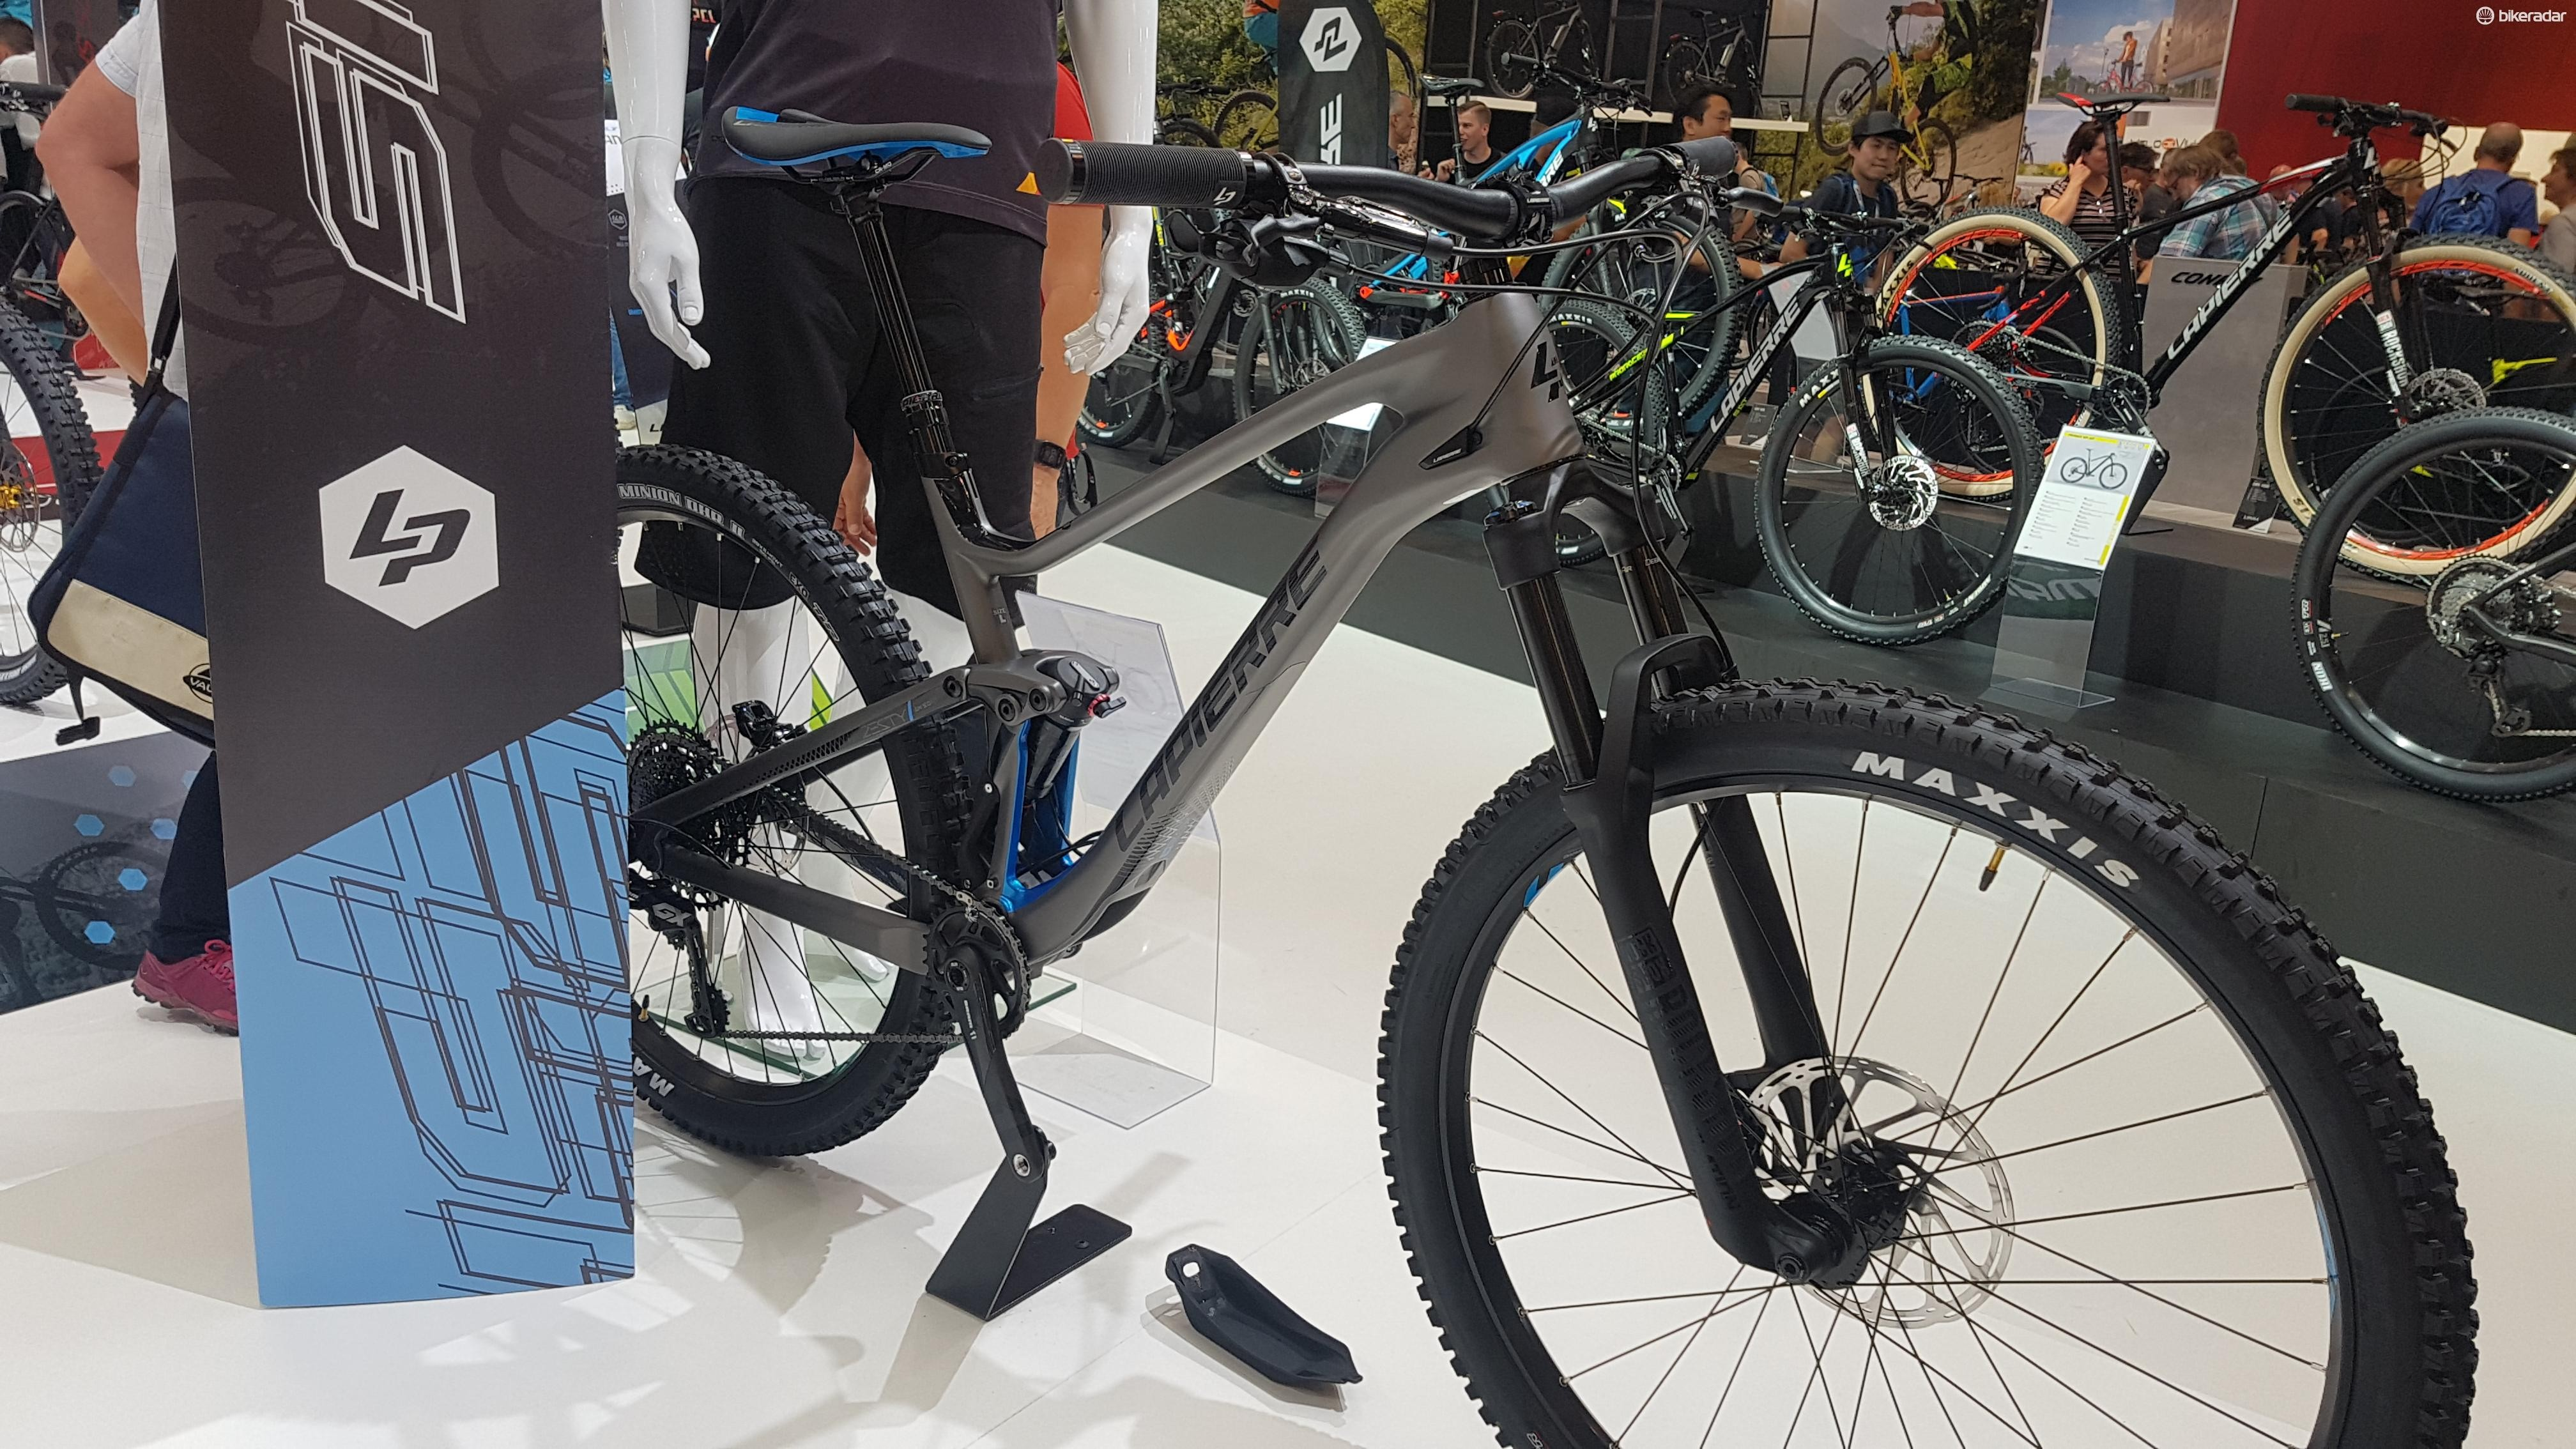 The Lapierre Zesty will have either 140 or 150mm of travel, and either 29in or 650b wheels